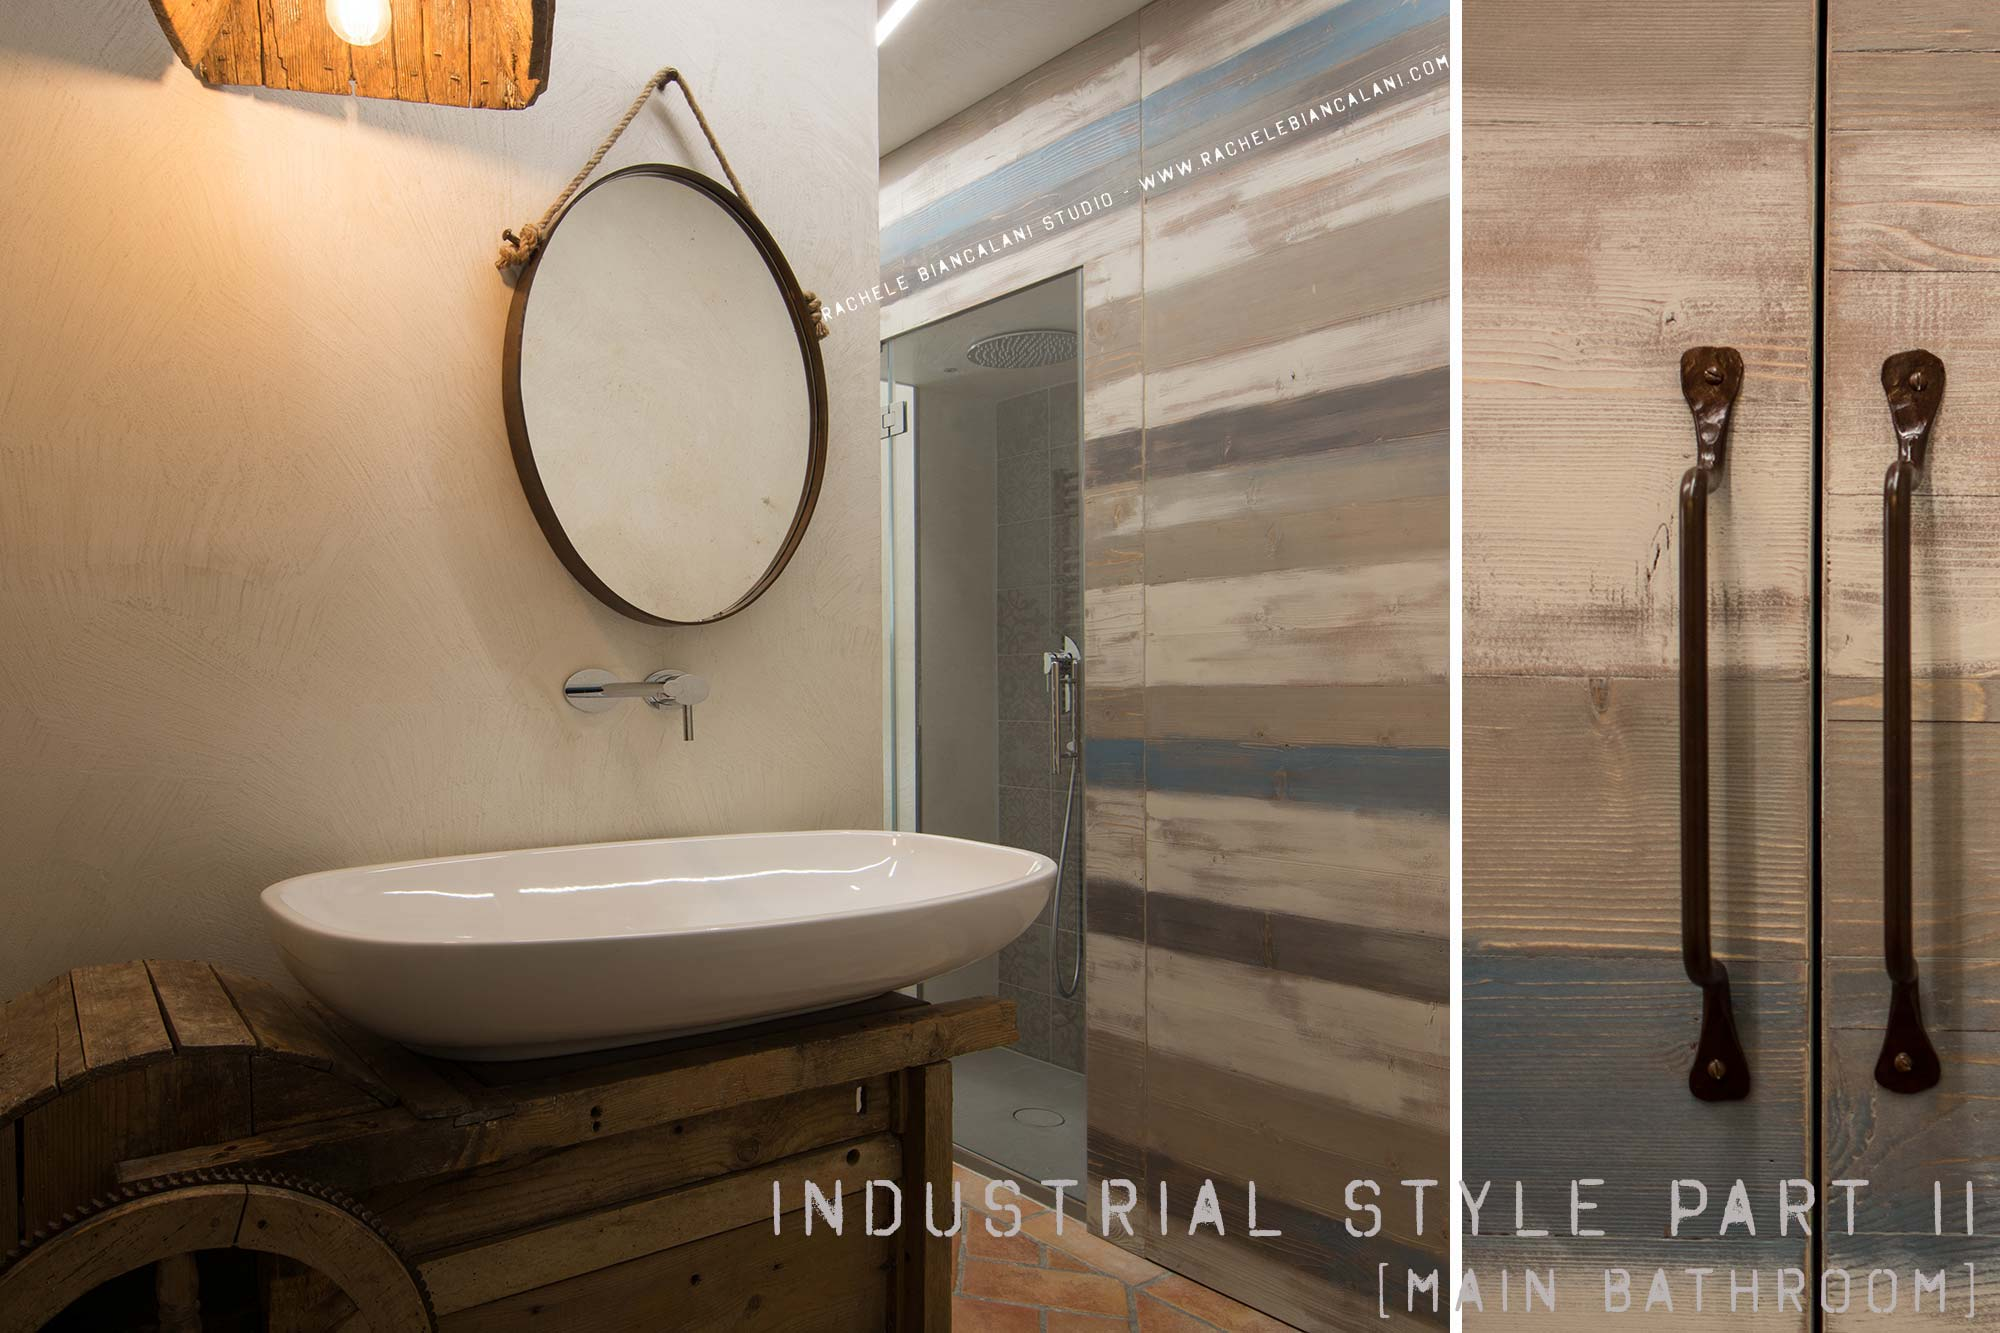 Vintage industrial style a brand new stunning bathroom - Bagno stile industriale ...